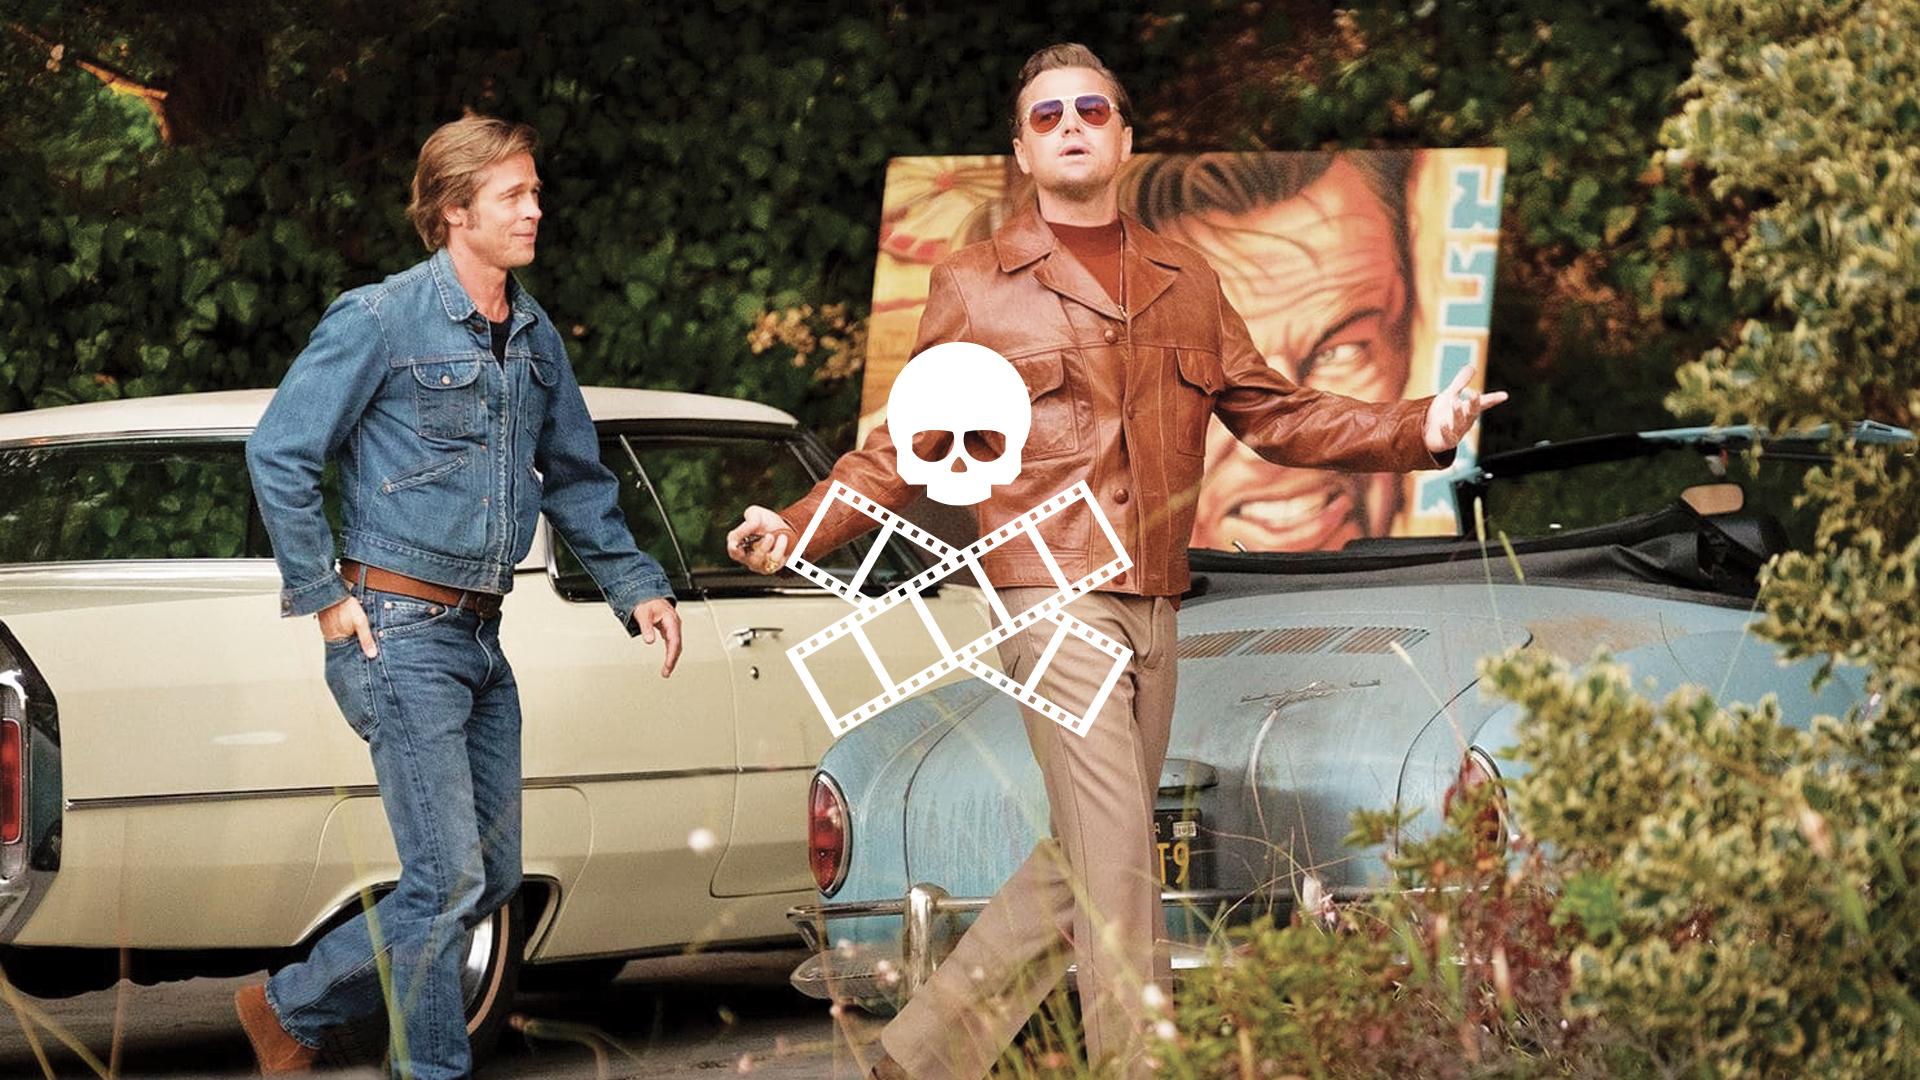 148. Once Upon A Time In Hollywood